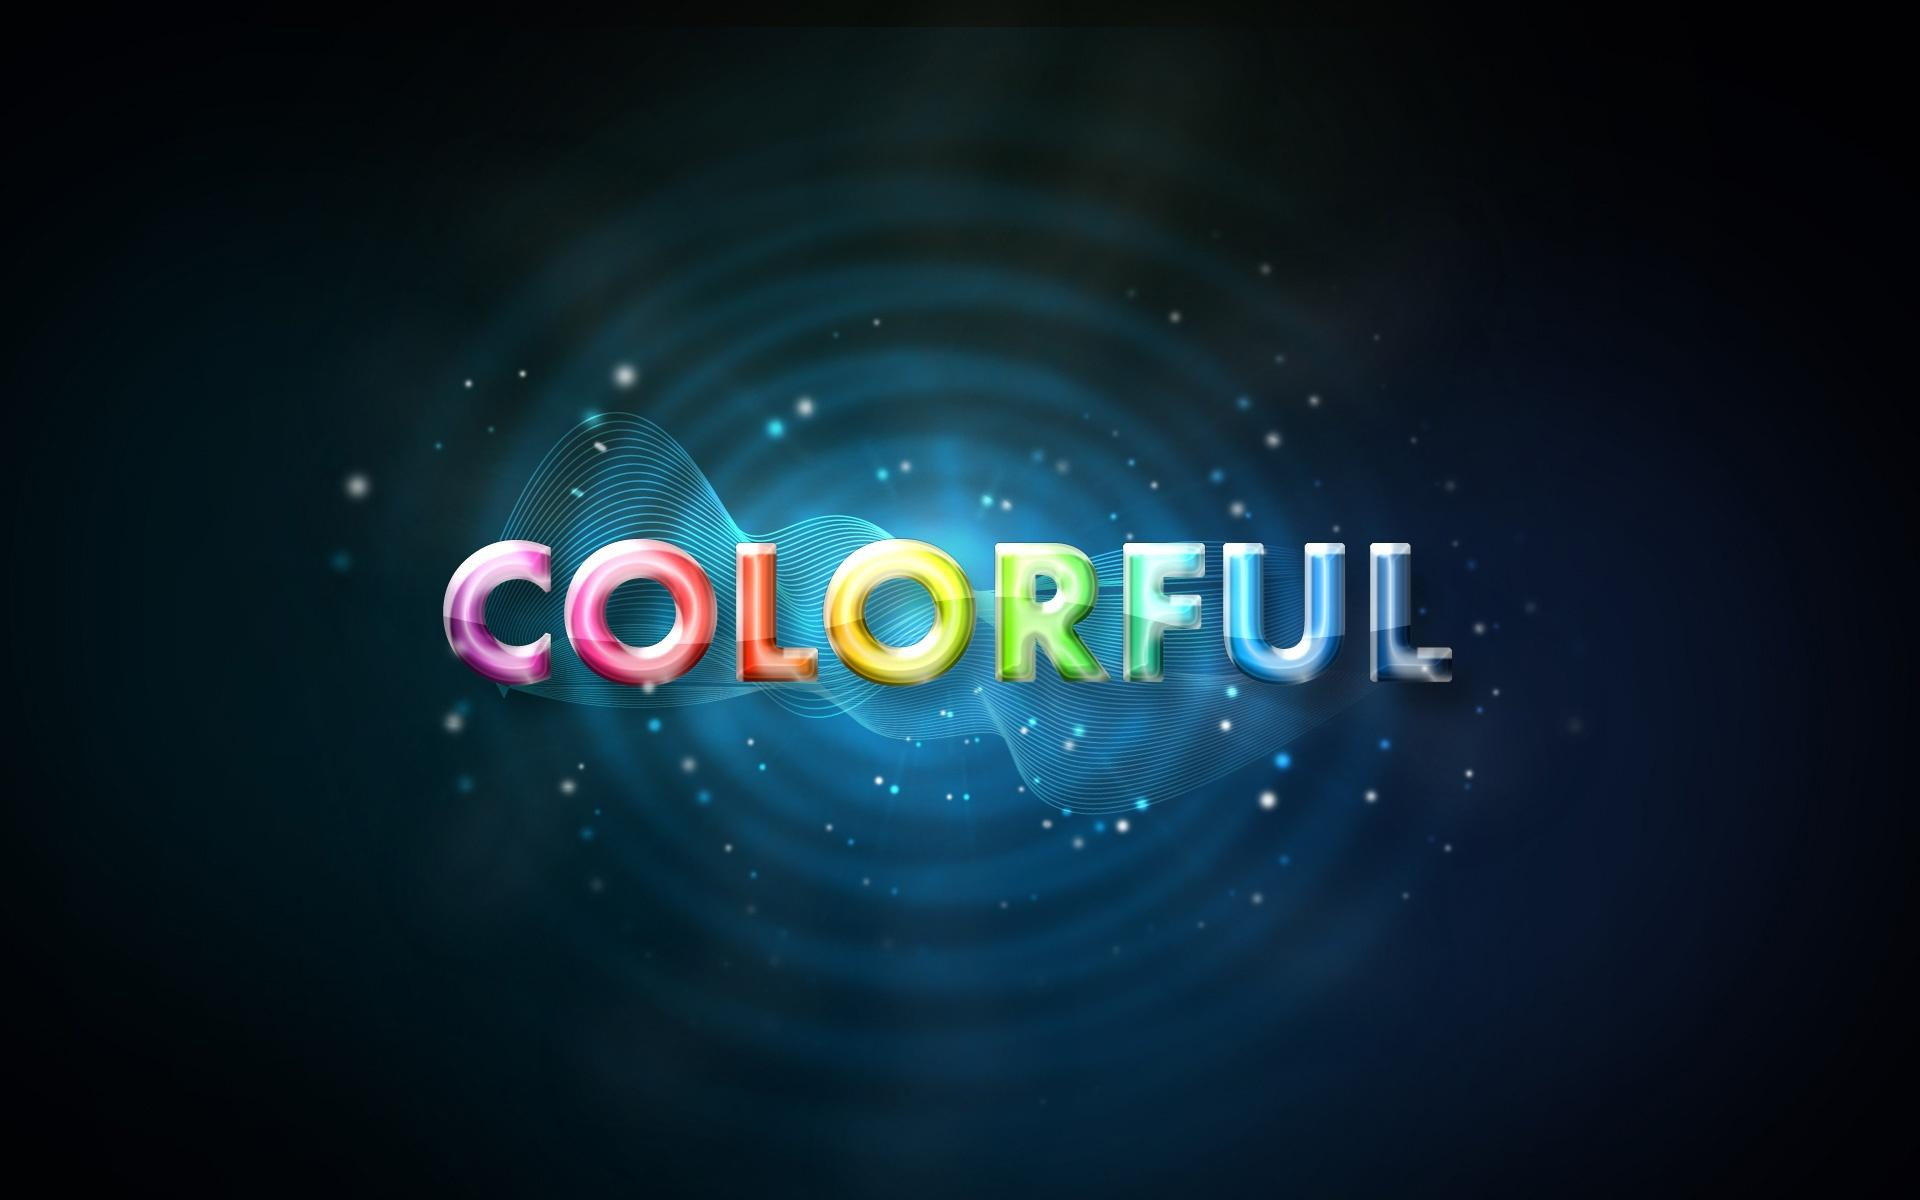 Обои ColorFul 1920x1200